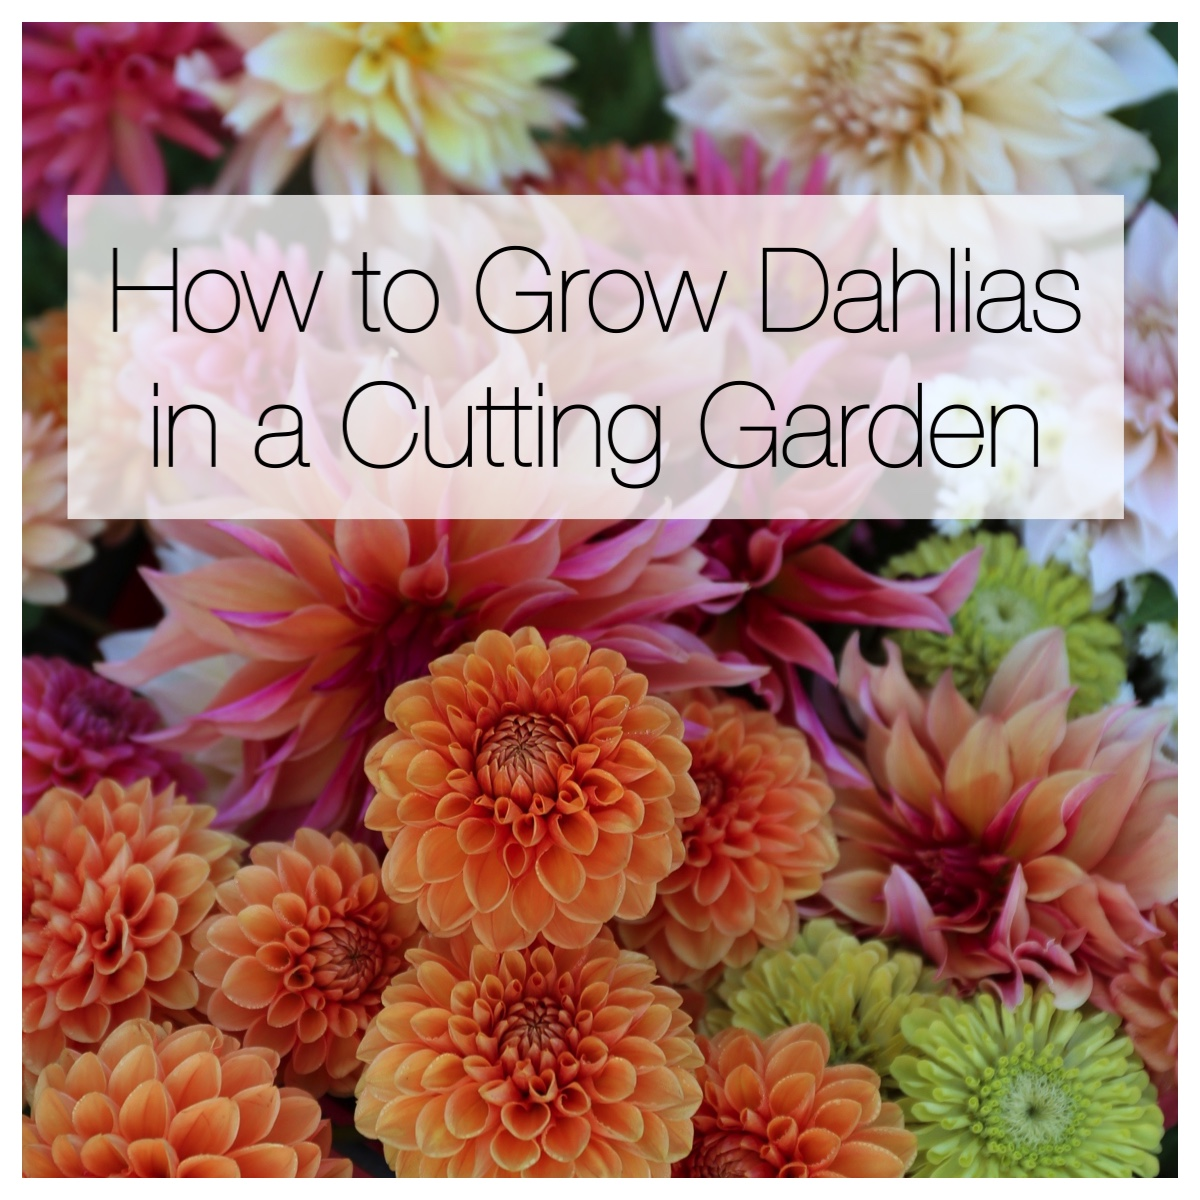 How to Grow Dahlias in a Cutting Garden